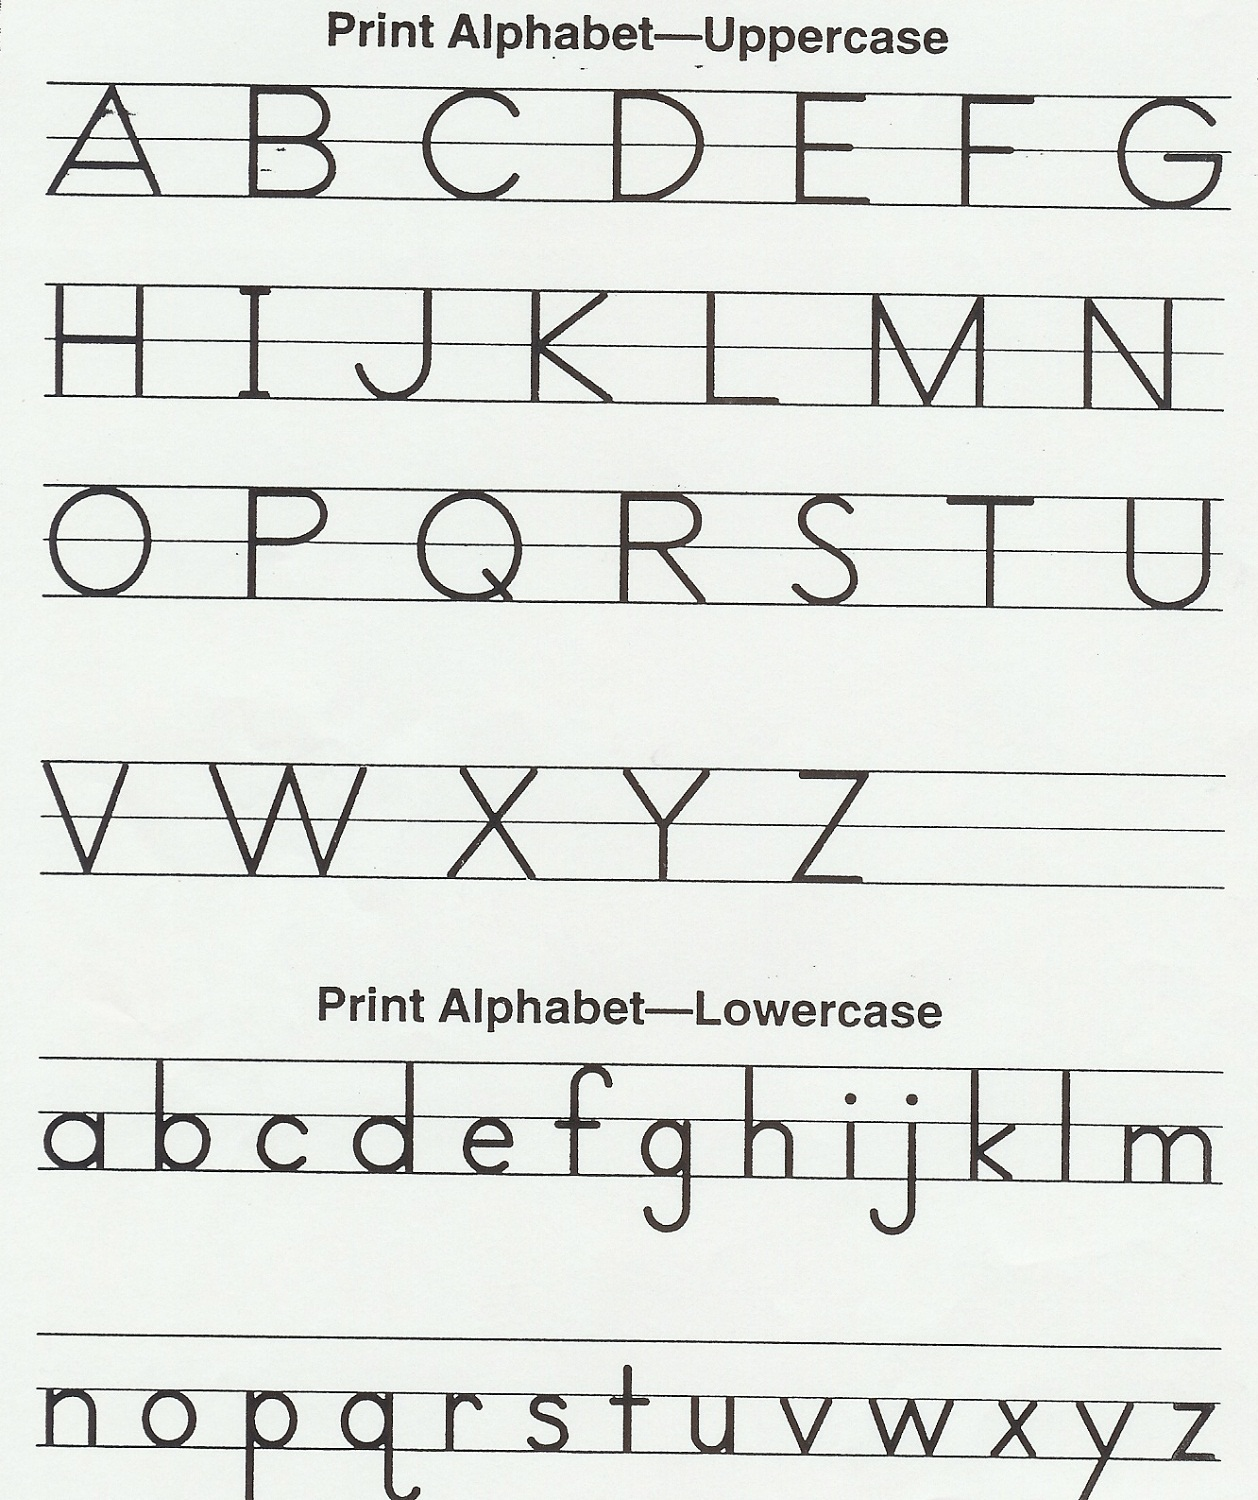 Letter A Worksheets For Preschoolers : Alphabet printable for preschool activity shelter